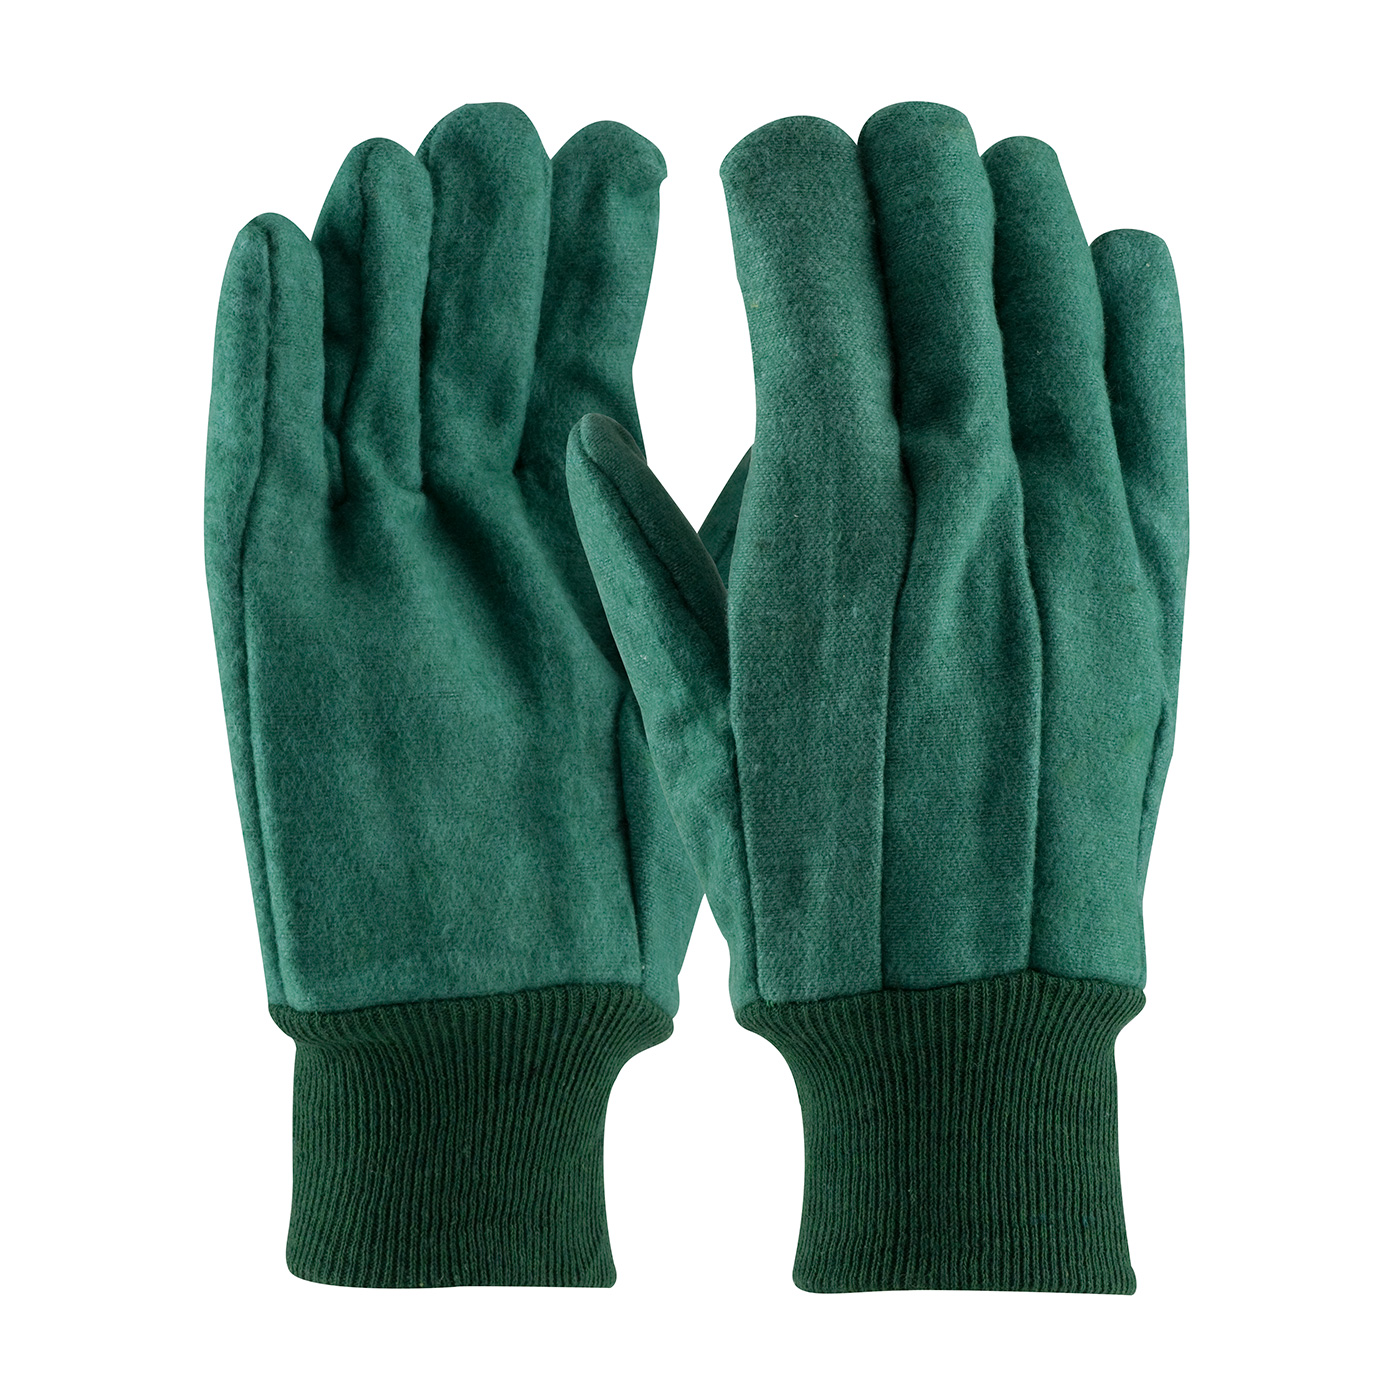 General Purpose Work Gloves